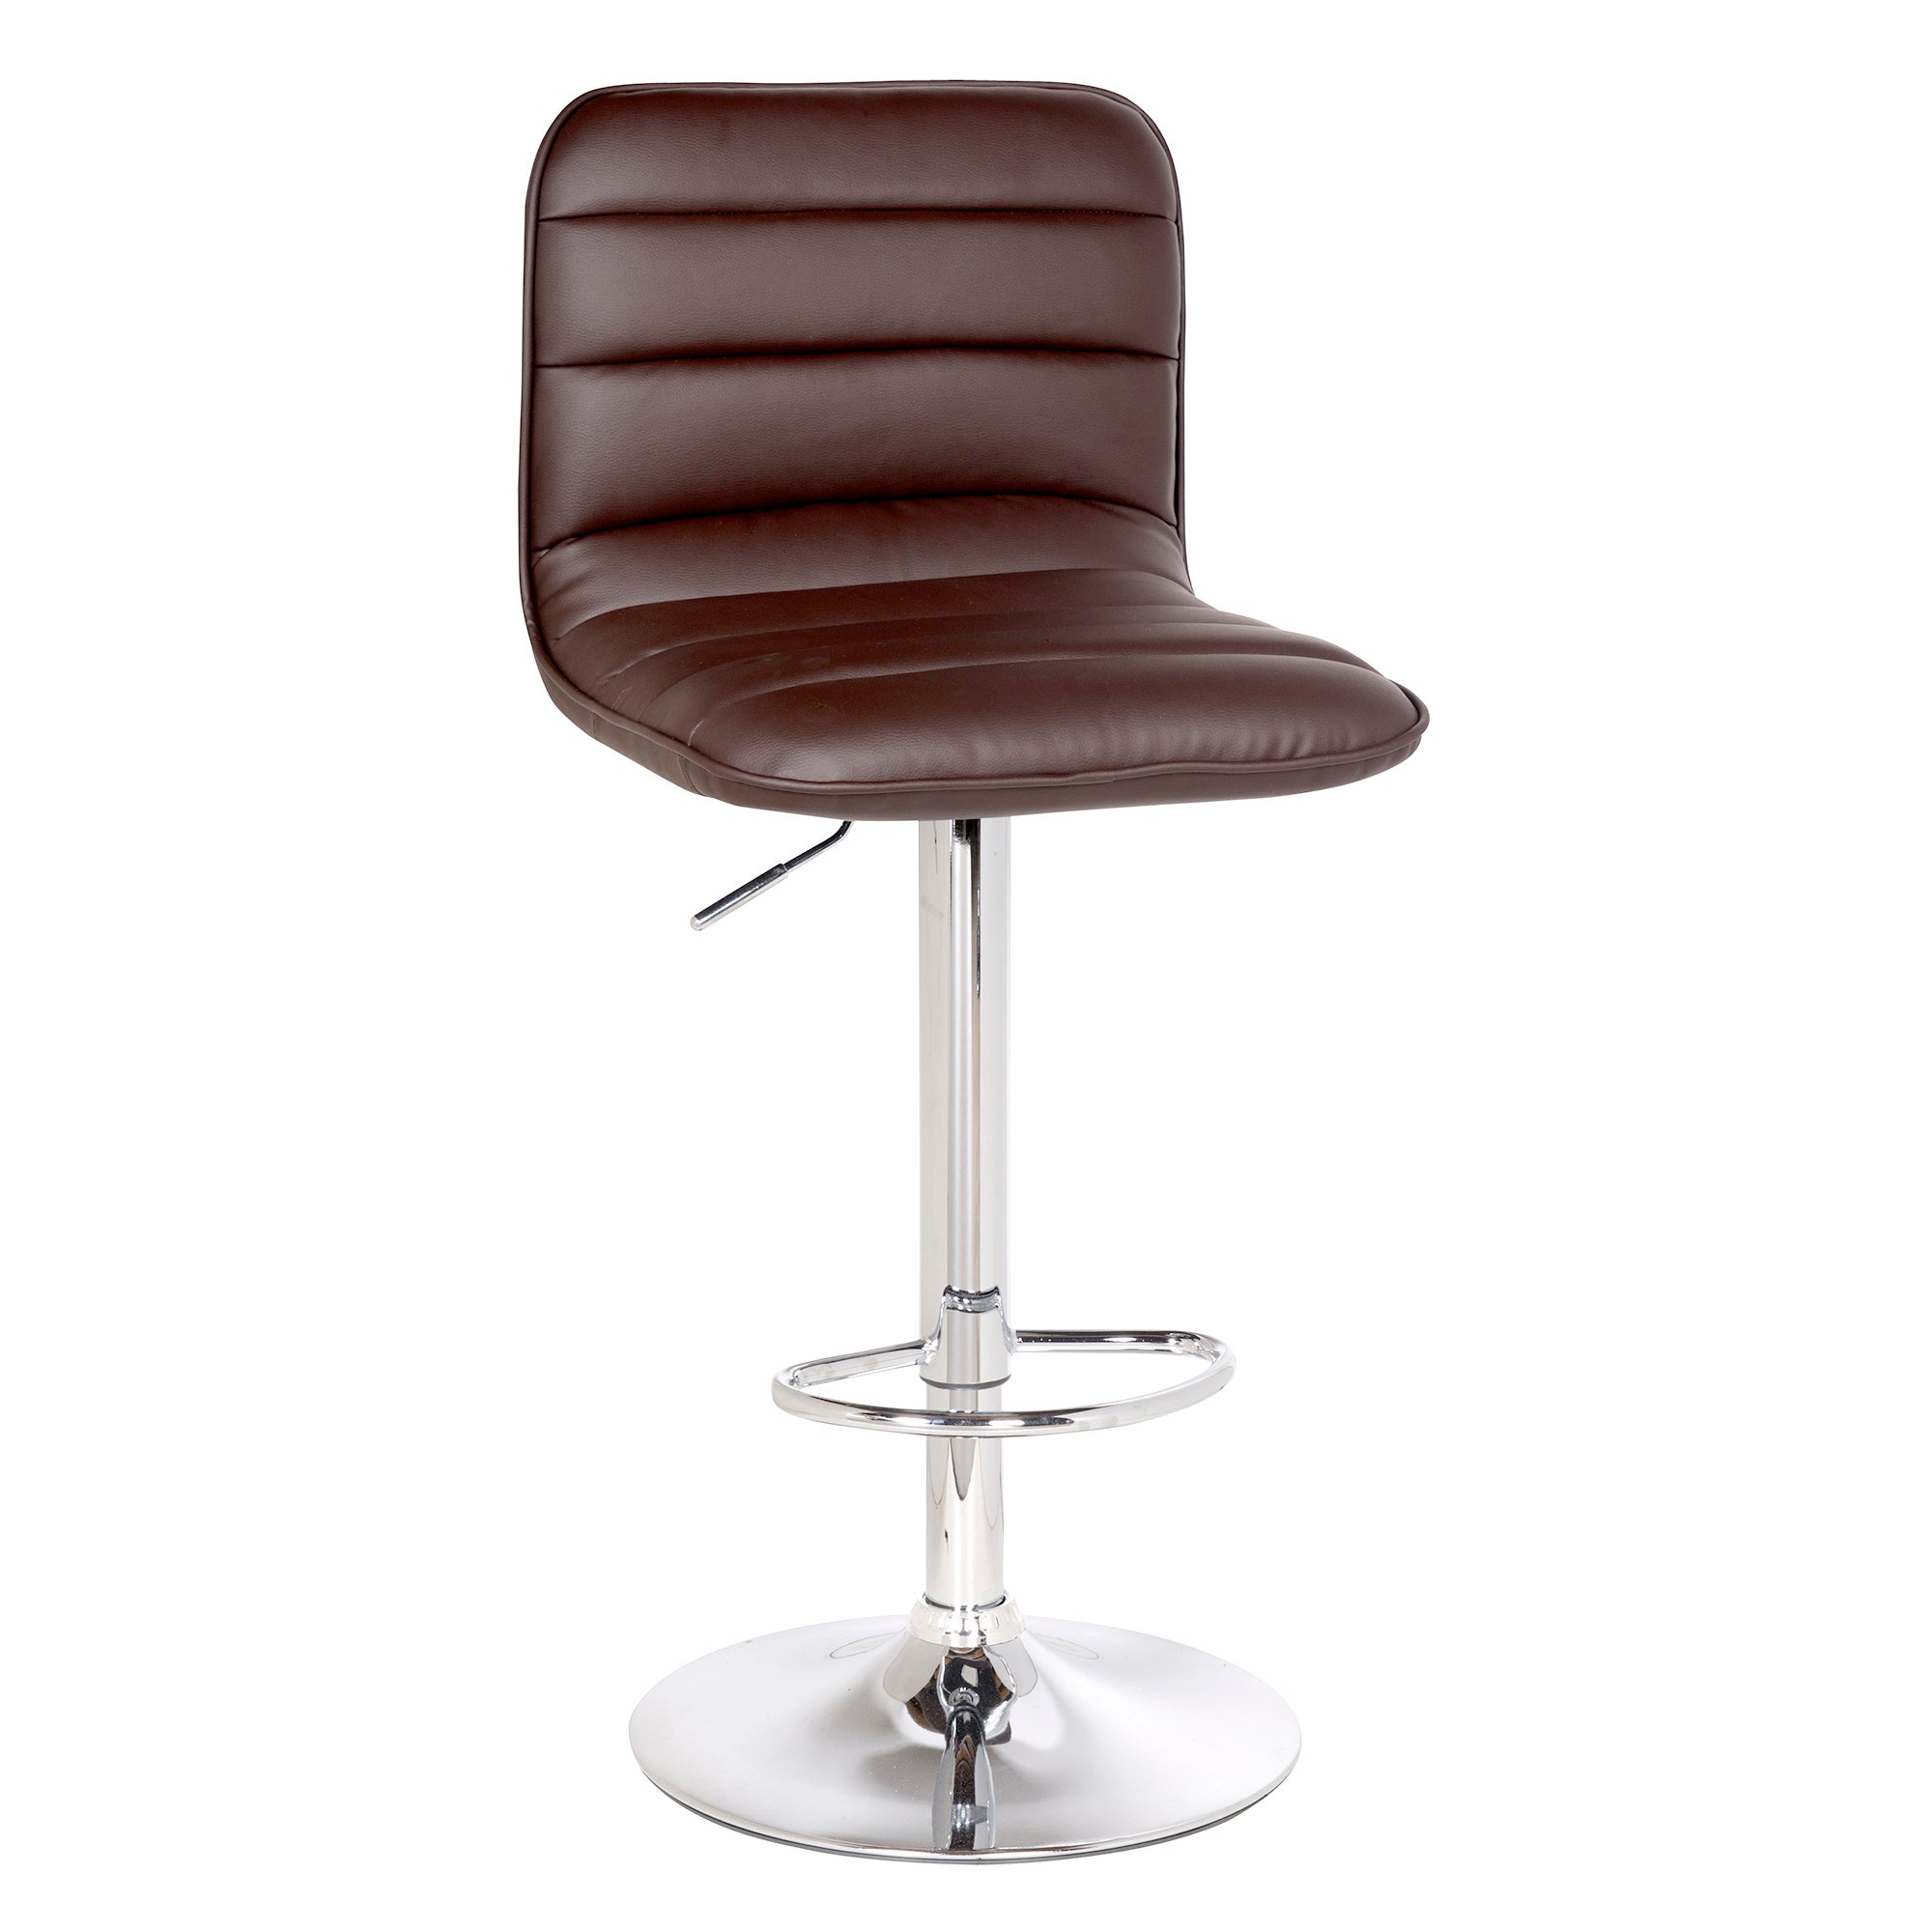 Como Upholstered Gas Lift Bar Stool